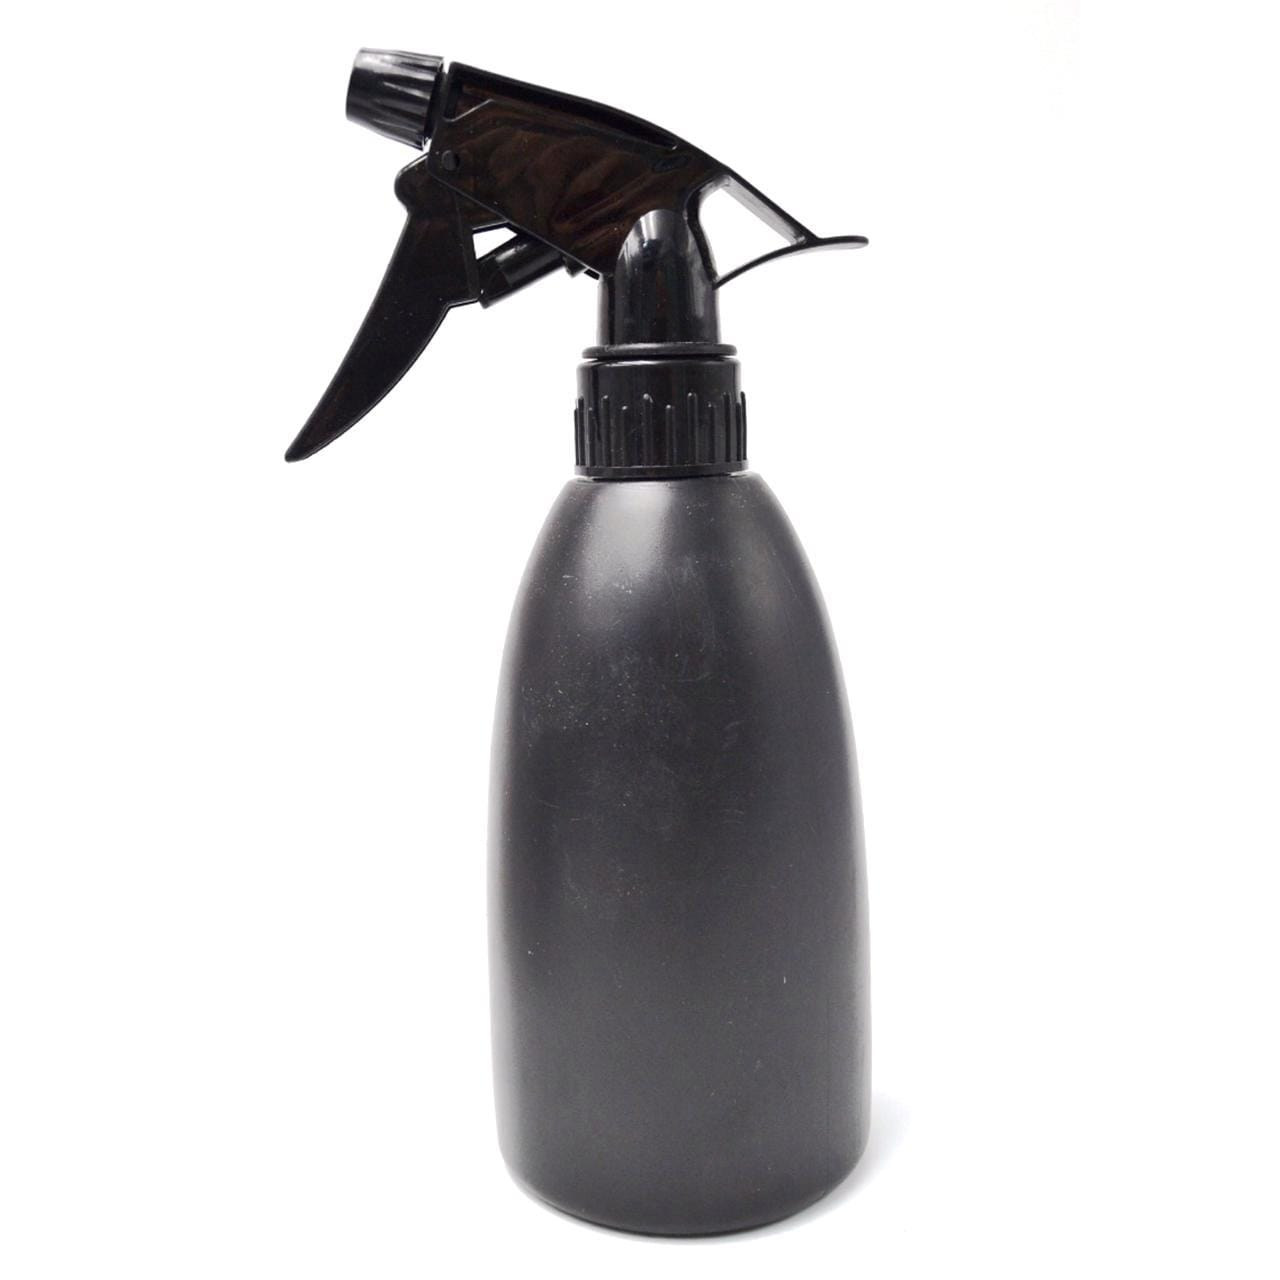 Spray bottle, Spray, Salon, Hair cutting